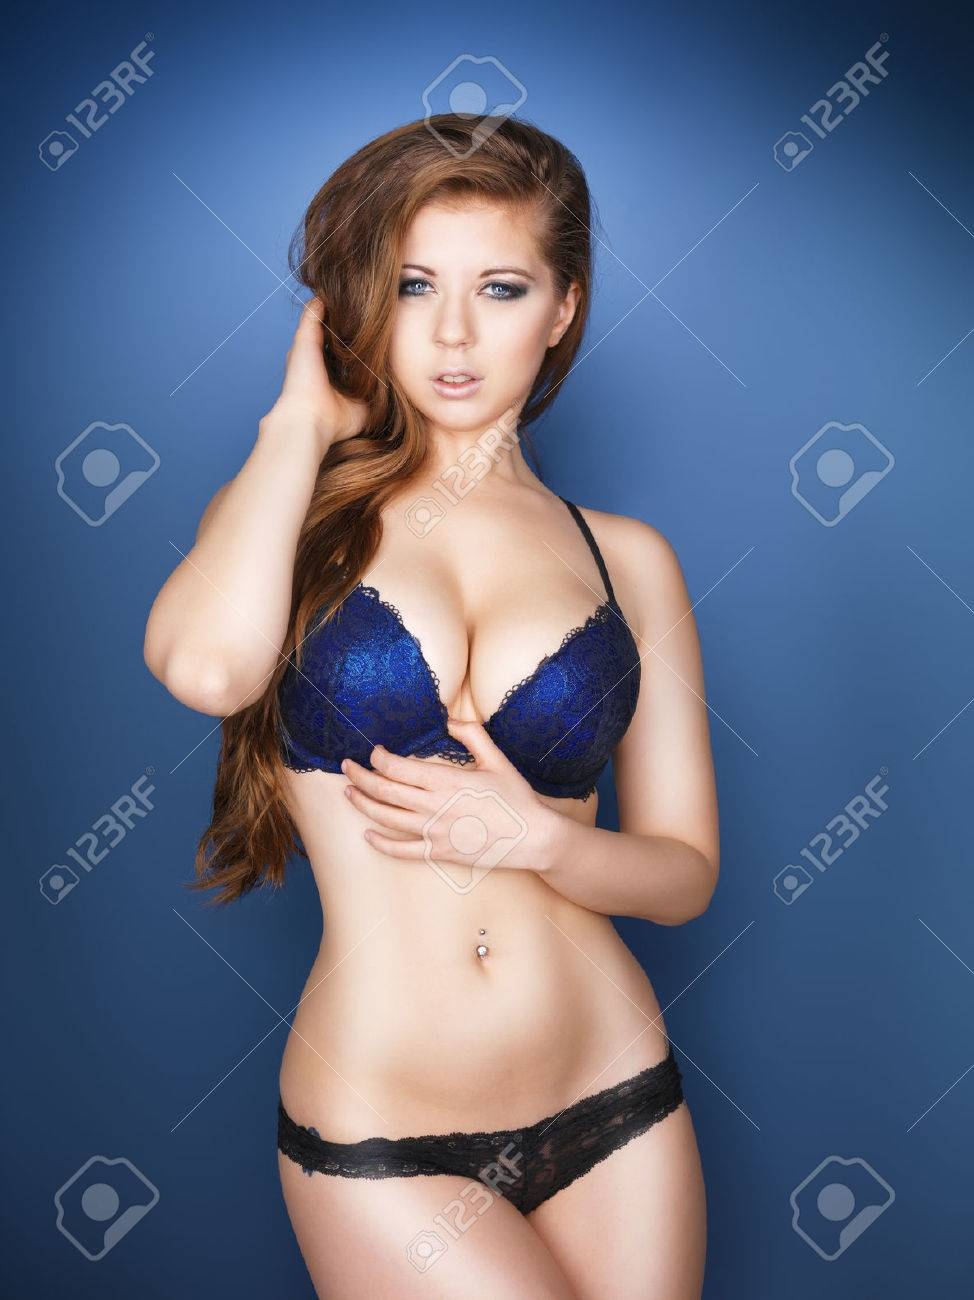 Beautiful sexy model with large breasts and blue eyes Stock Photo - 23421532